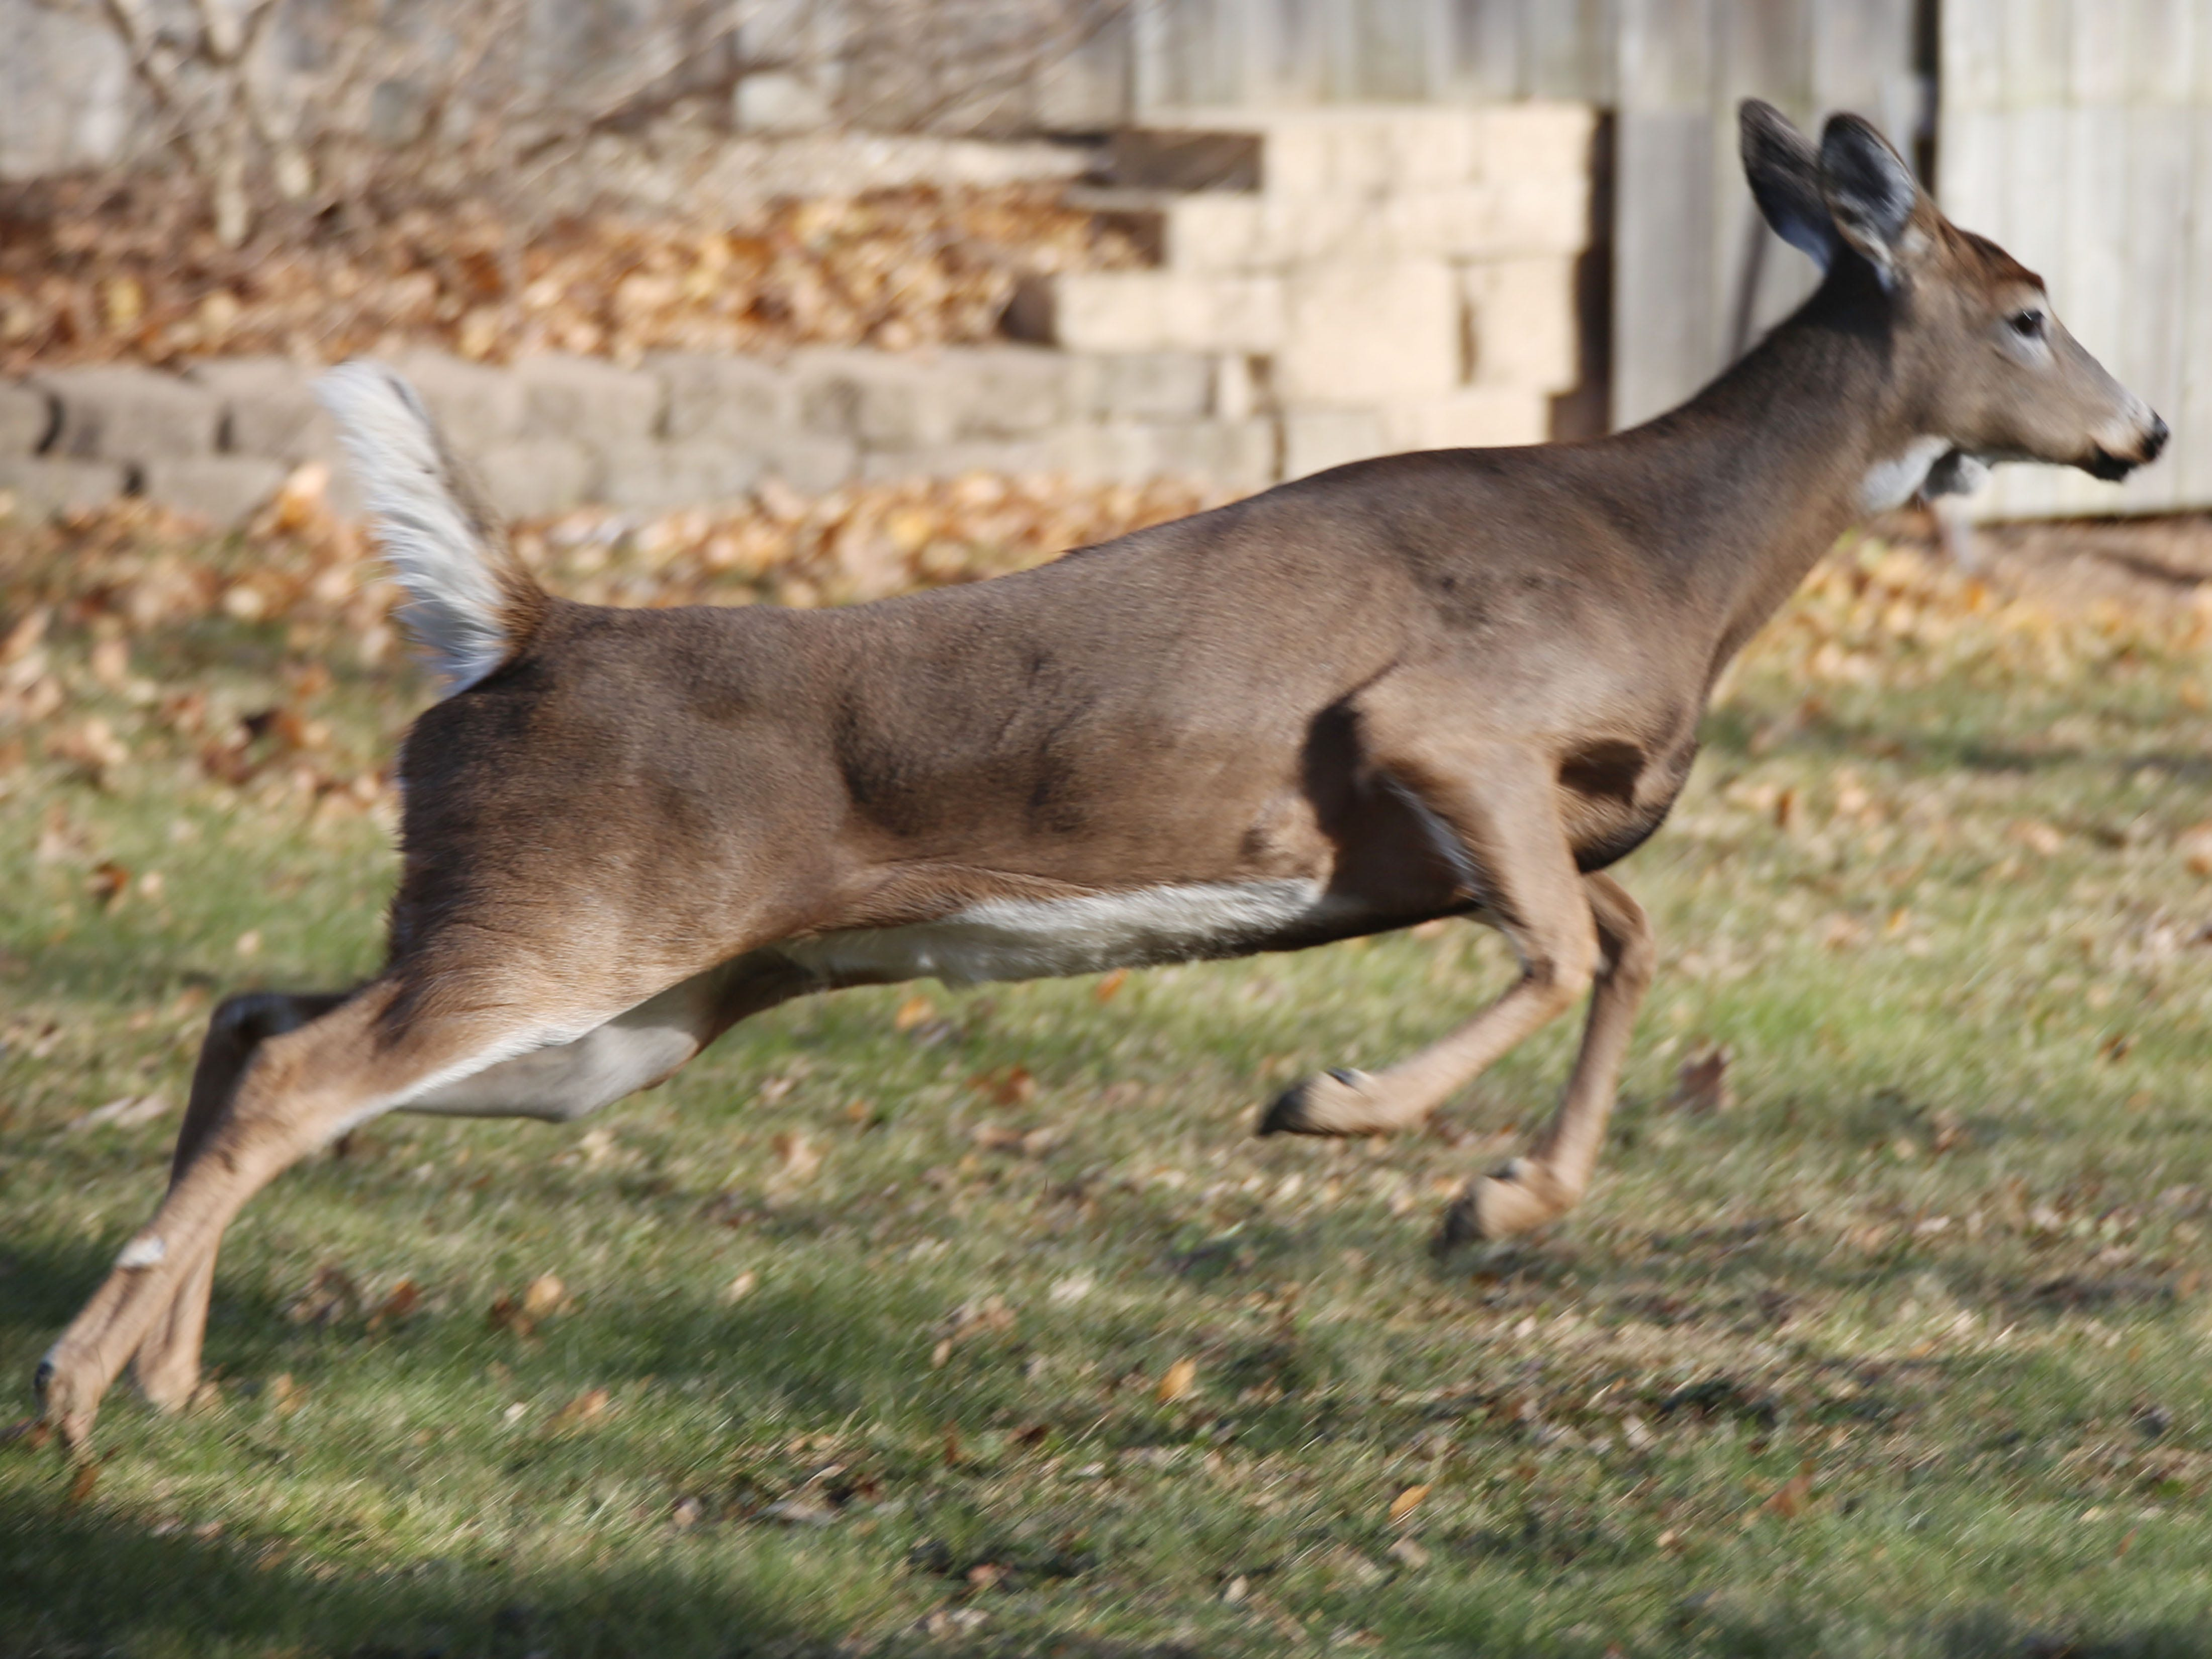 A doe leaps around in a backyard in the 1000 block of North 23rd Street in Sheboygan, Tuesday, November 27, 2018 in Sheboygan, Wis.